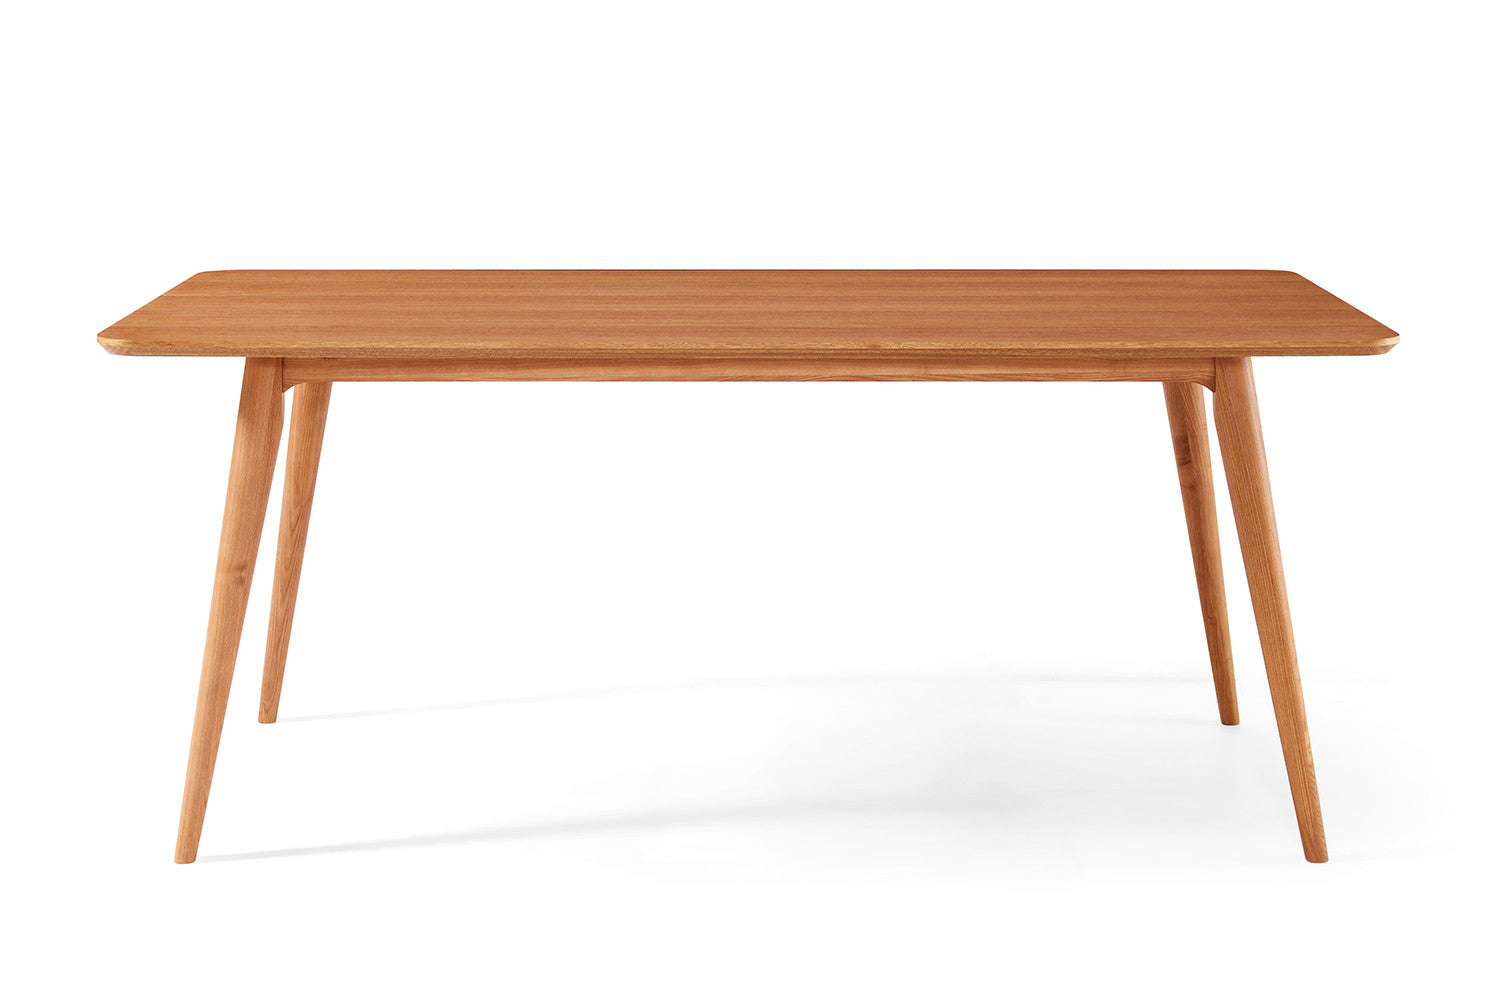 Table de salle manger design en bois julia dewarens for Table design salle a manger